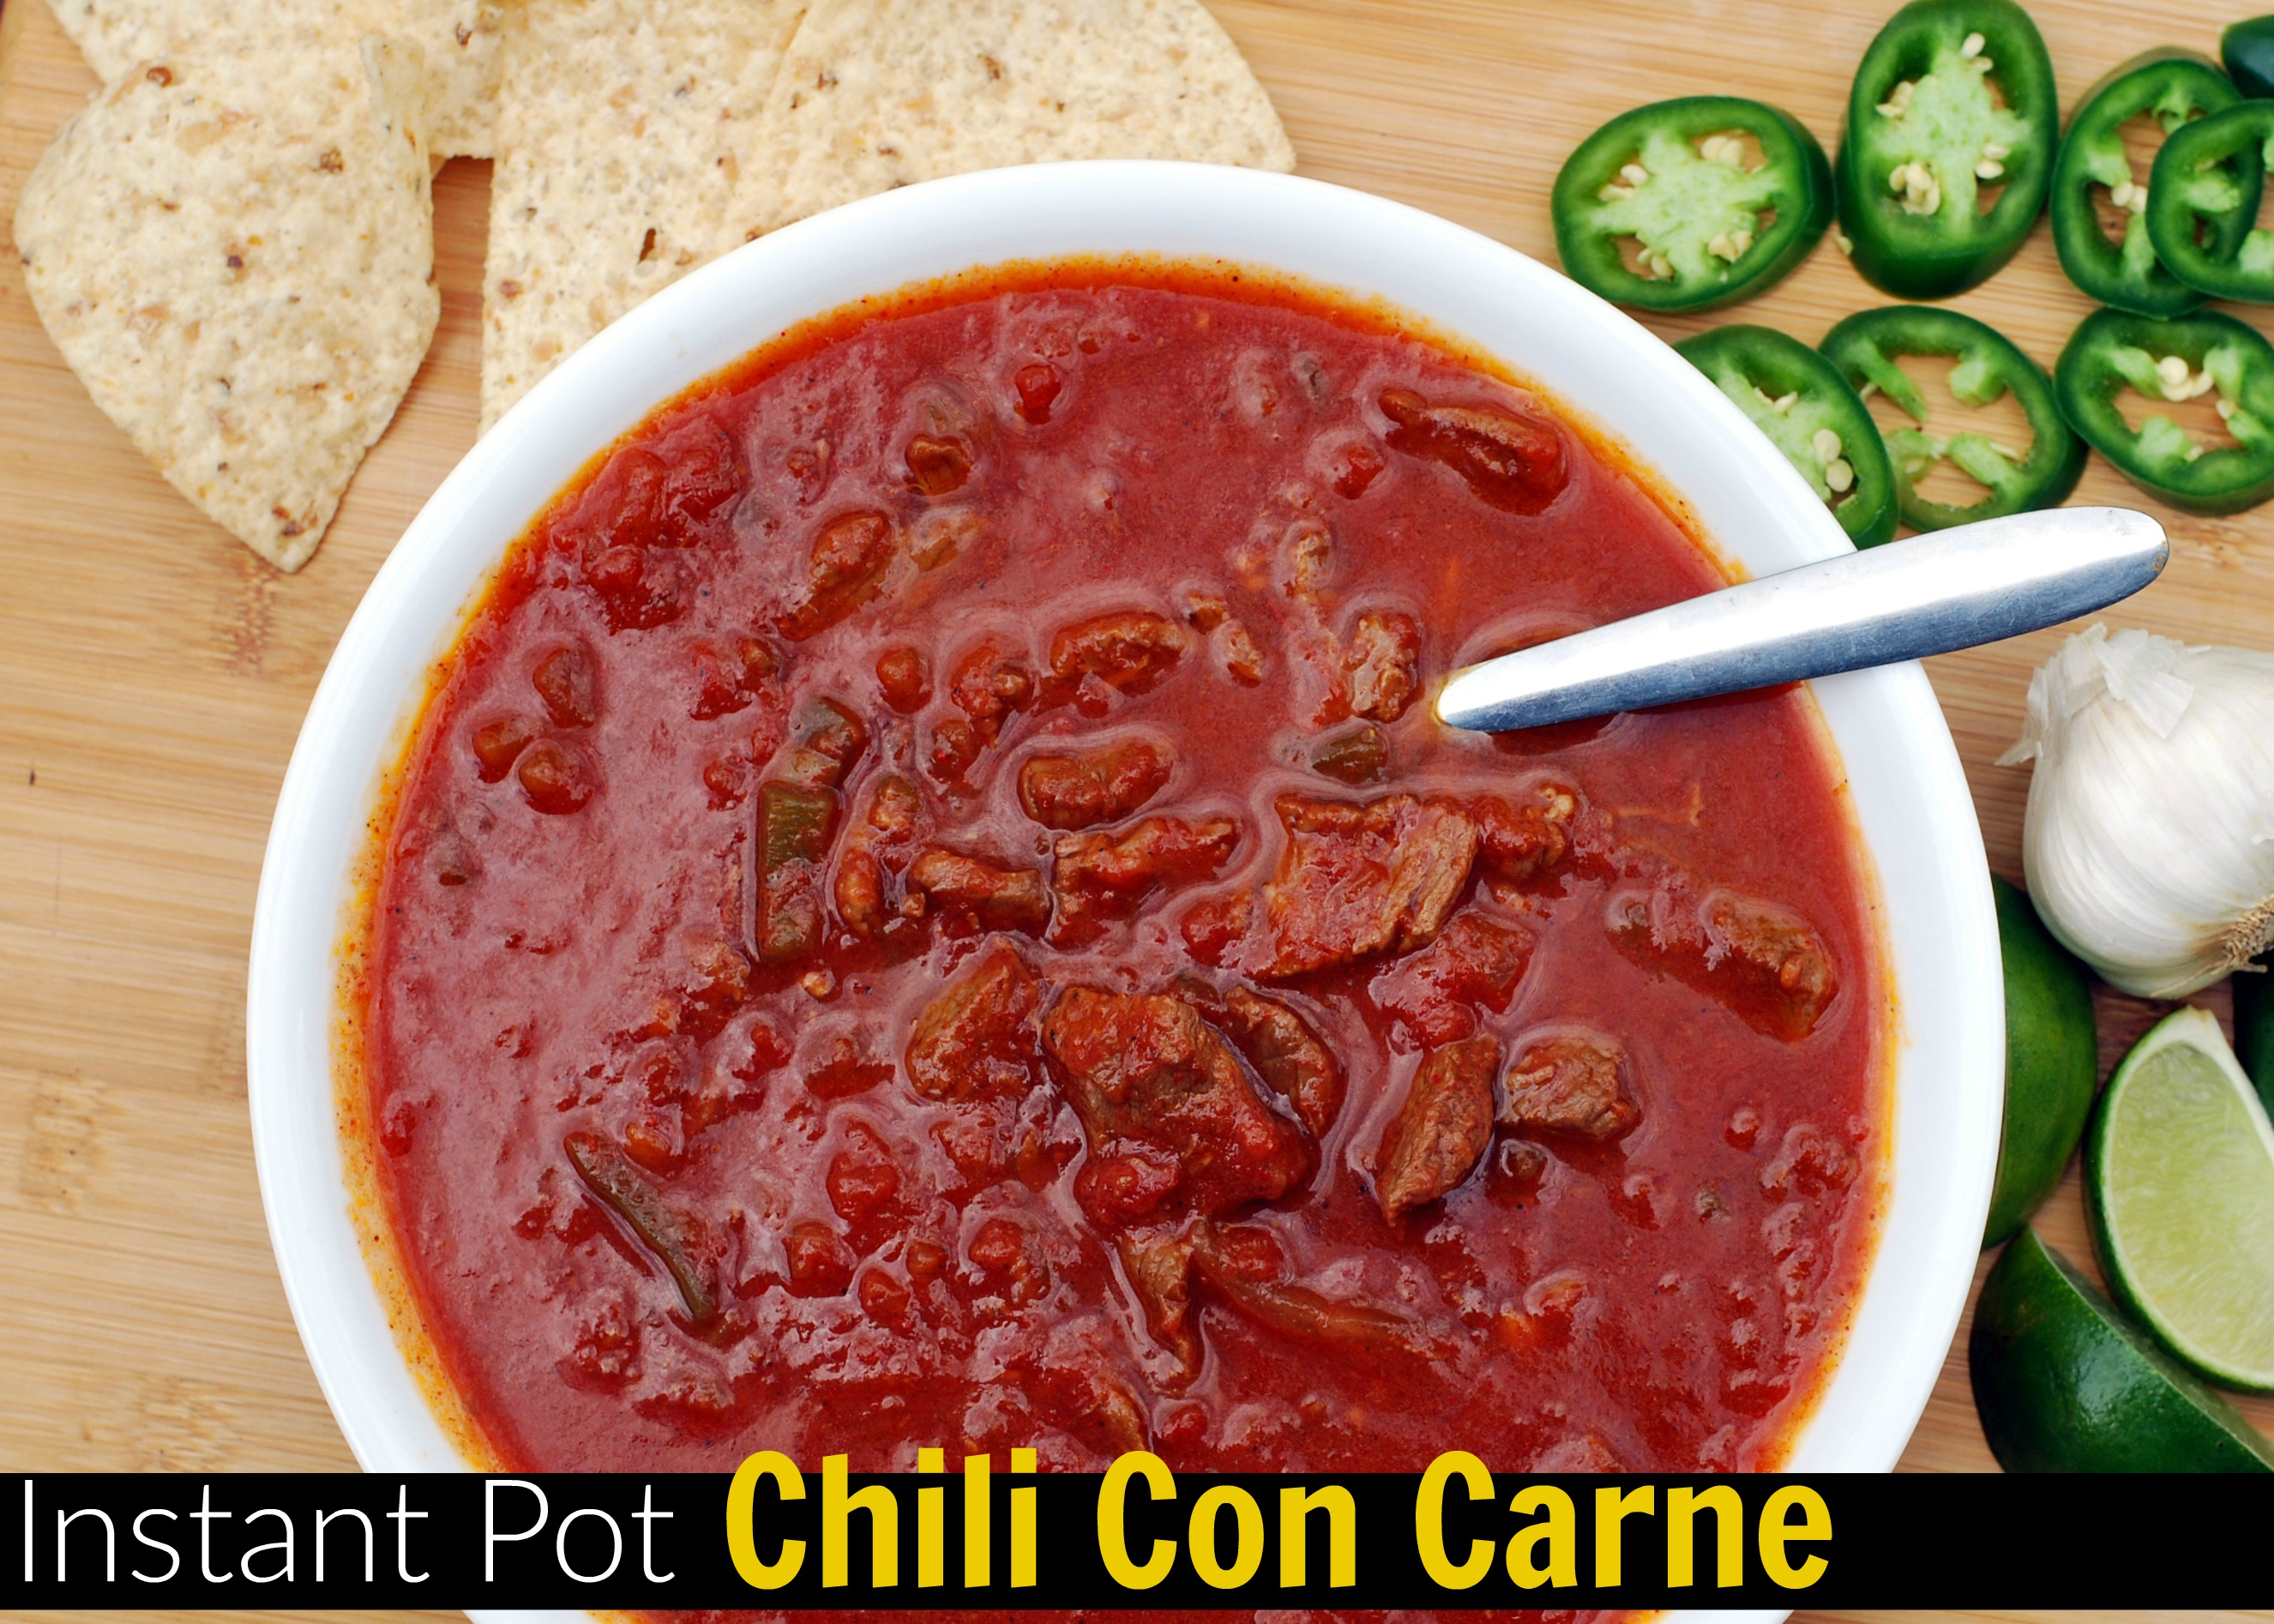 Instant Pot Chili con Carne